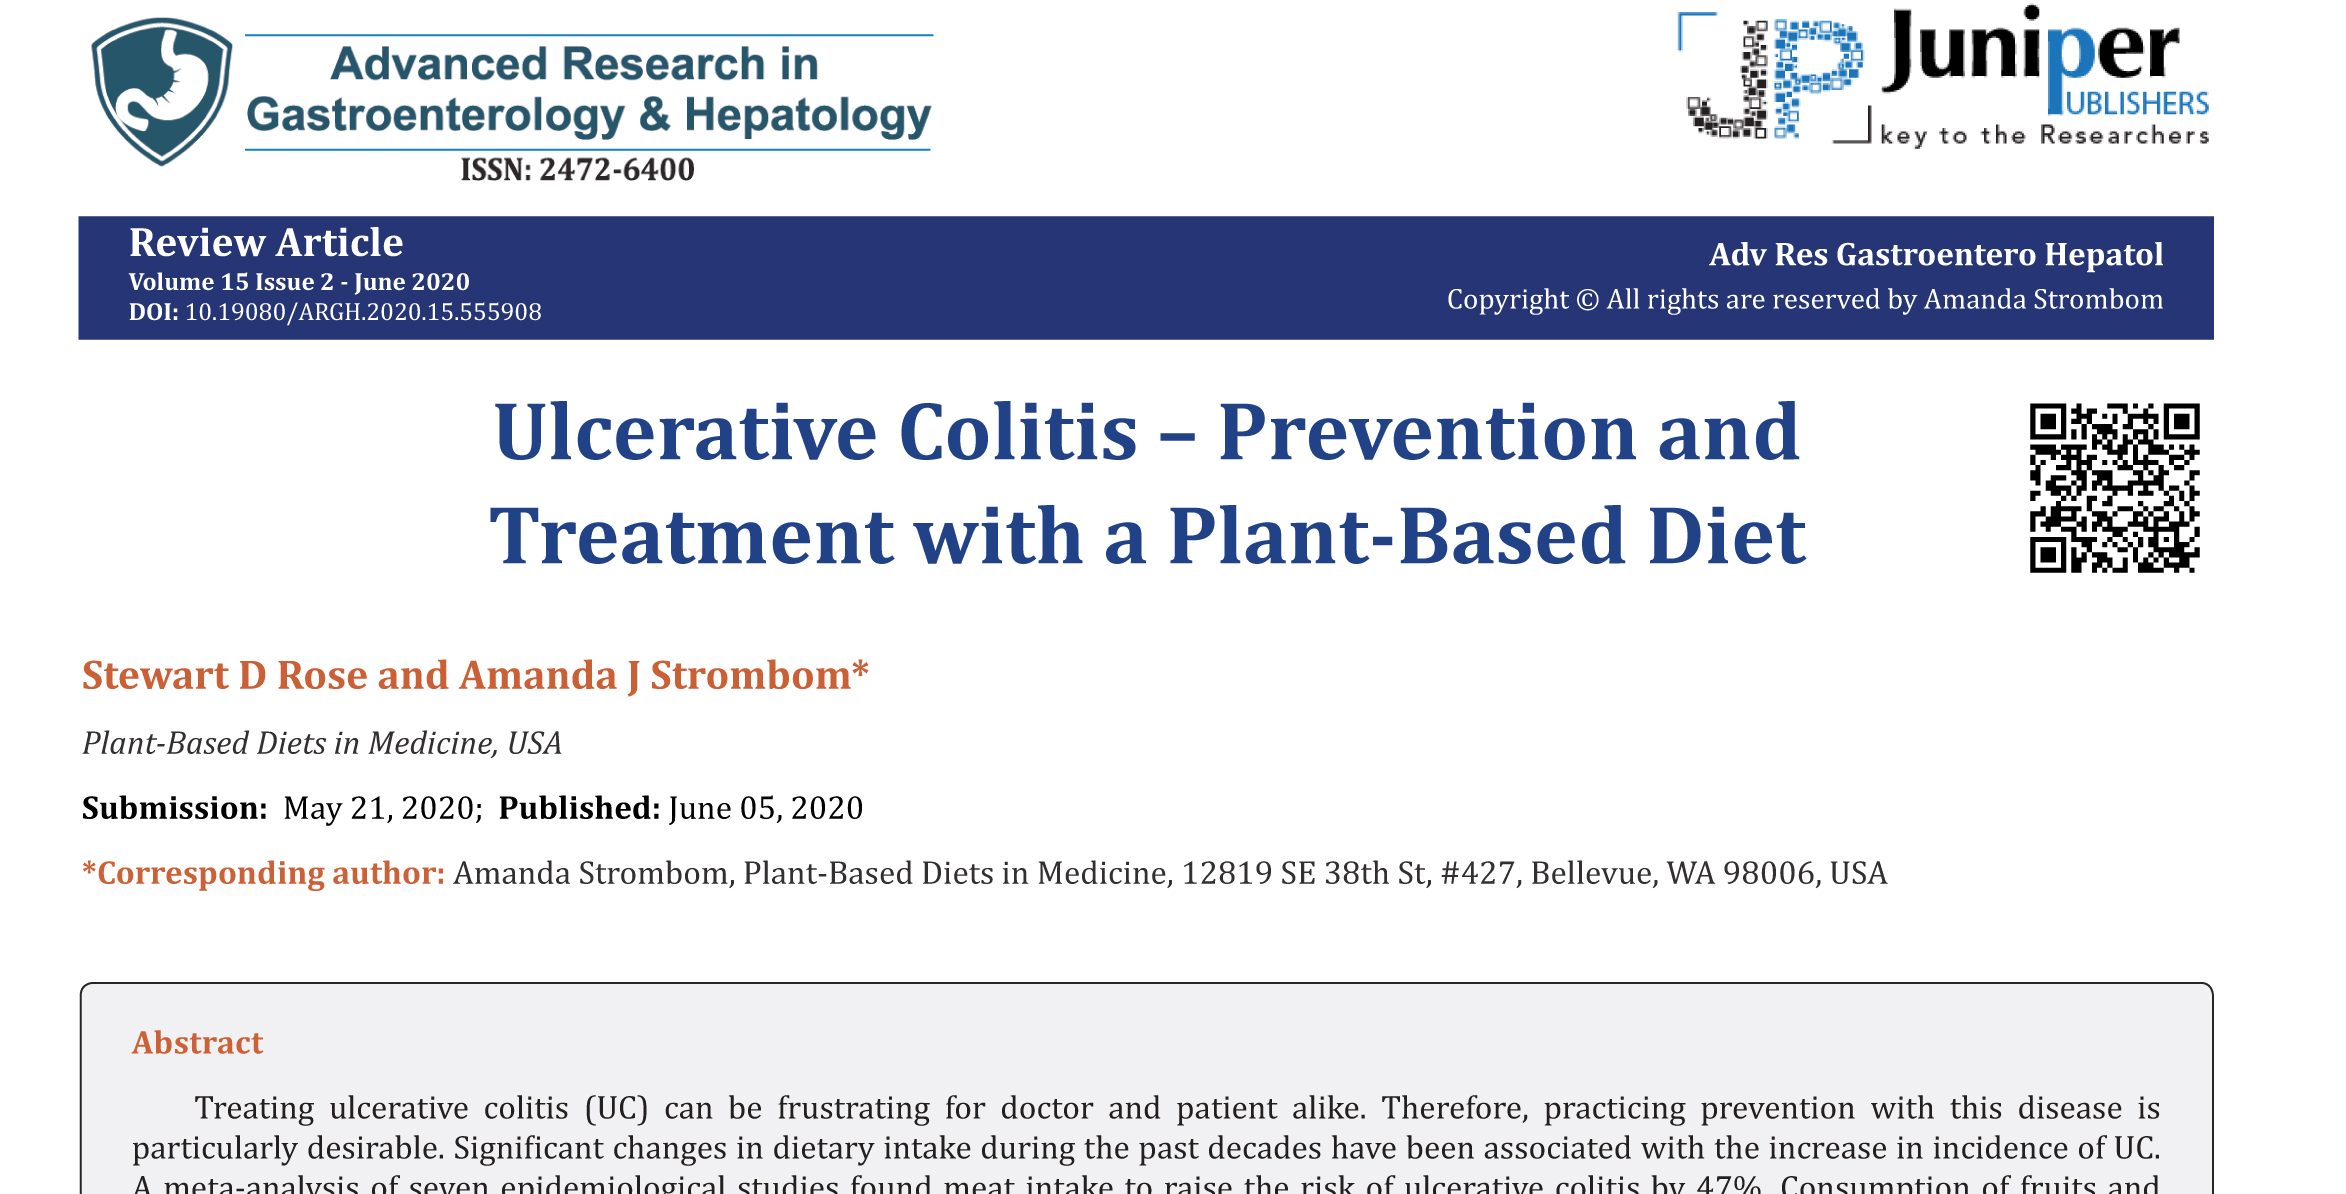 Ulcerative Colitis – Prevention and Treatment with a Plant-Based